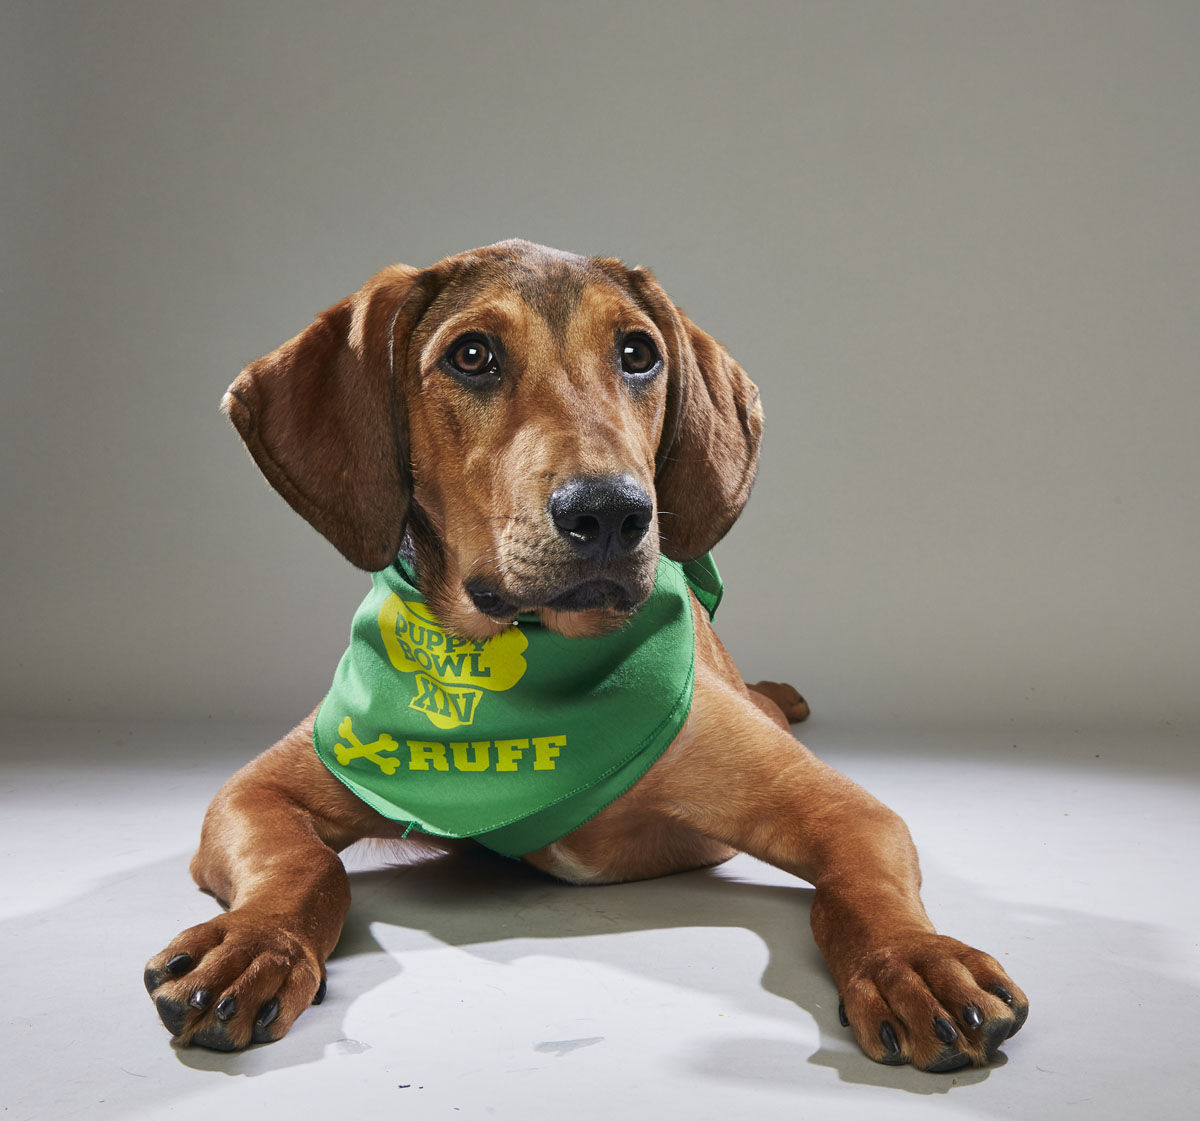 Barry from the Nashville Human Association (Courtesy Animal Planet)